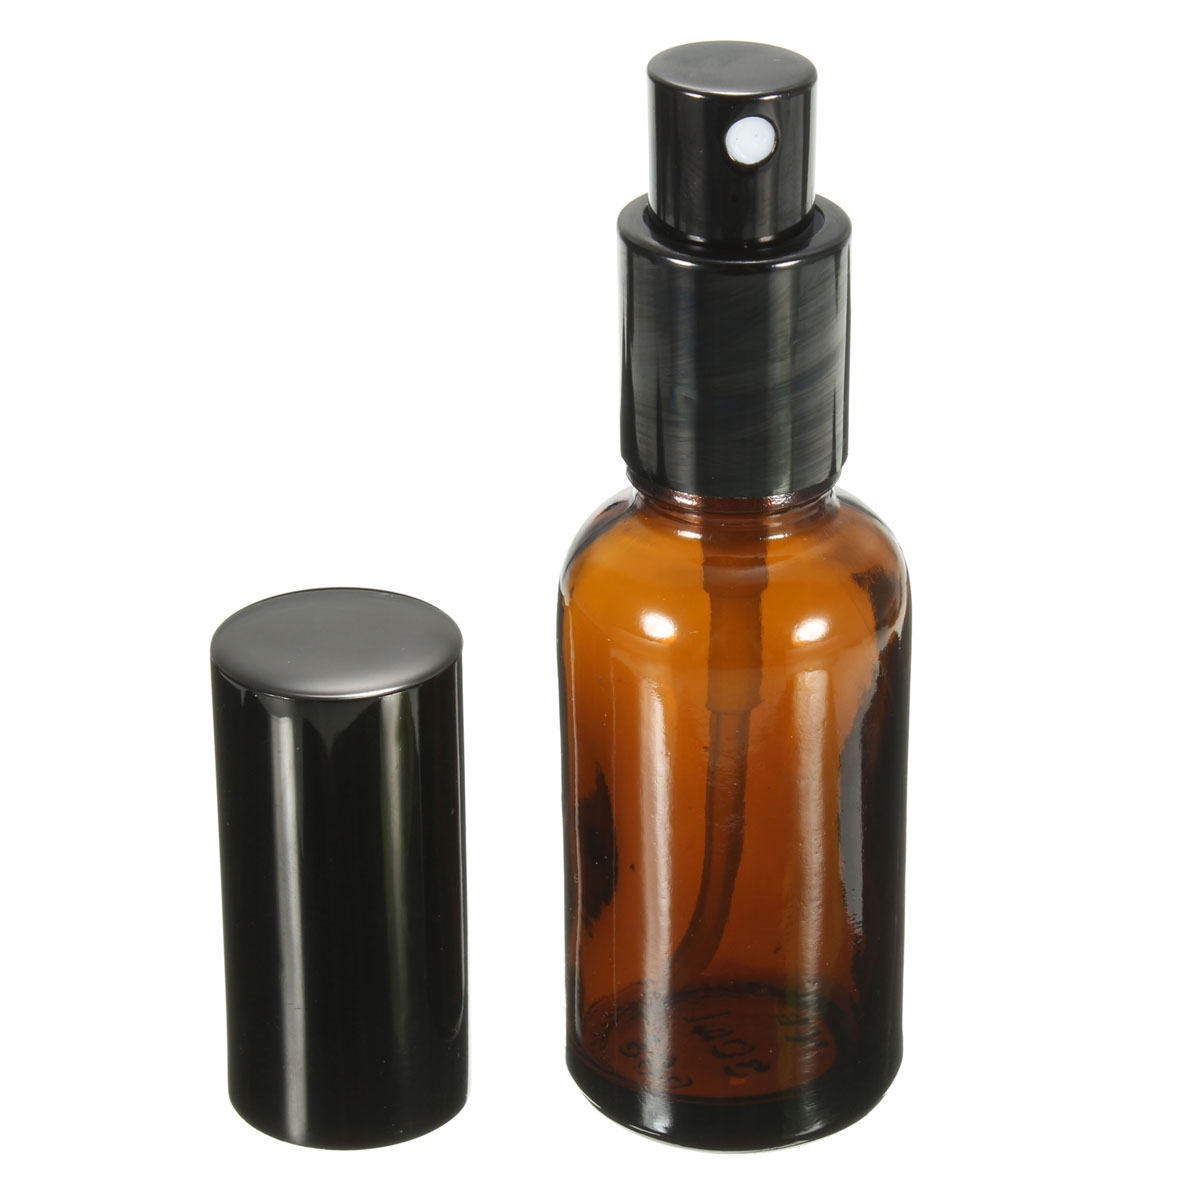 New 1PCS 30ML Amber Glass Atomizer Bottle Vial For Essential Oil Perfume Water Spray Bottles Dark Brown Cosmetic Containers(China (Mainland))